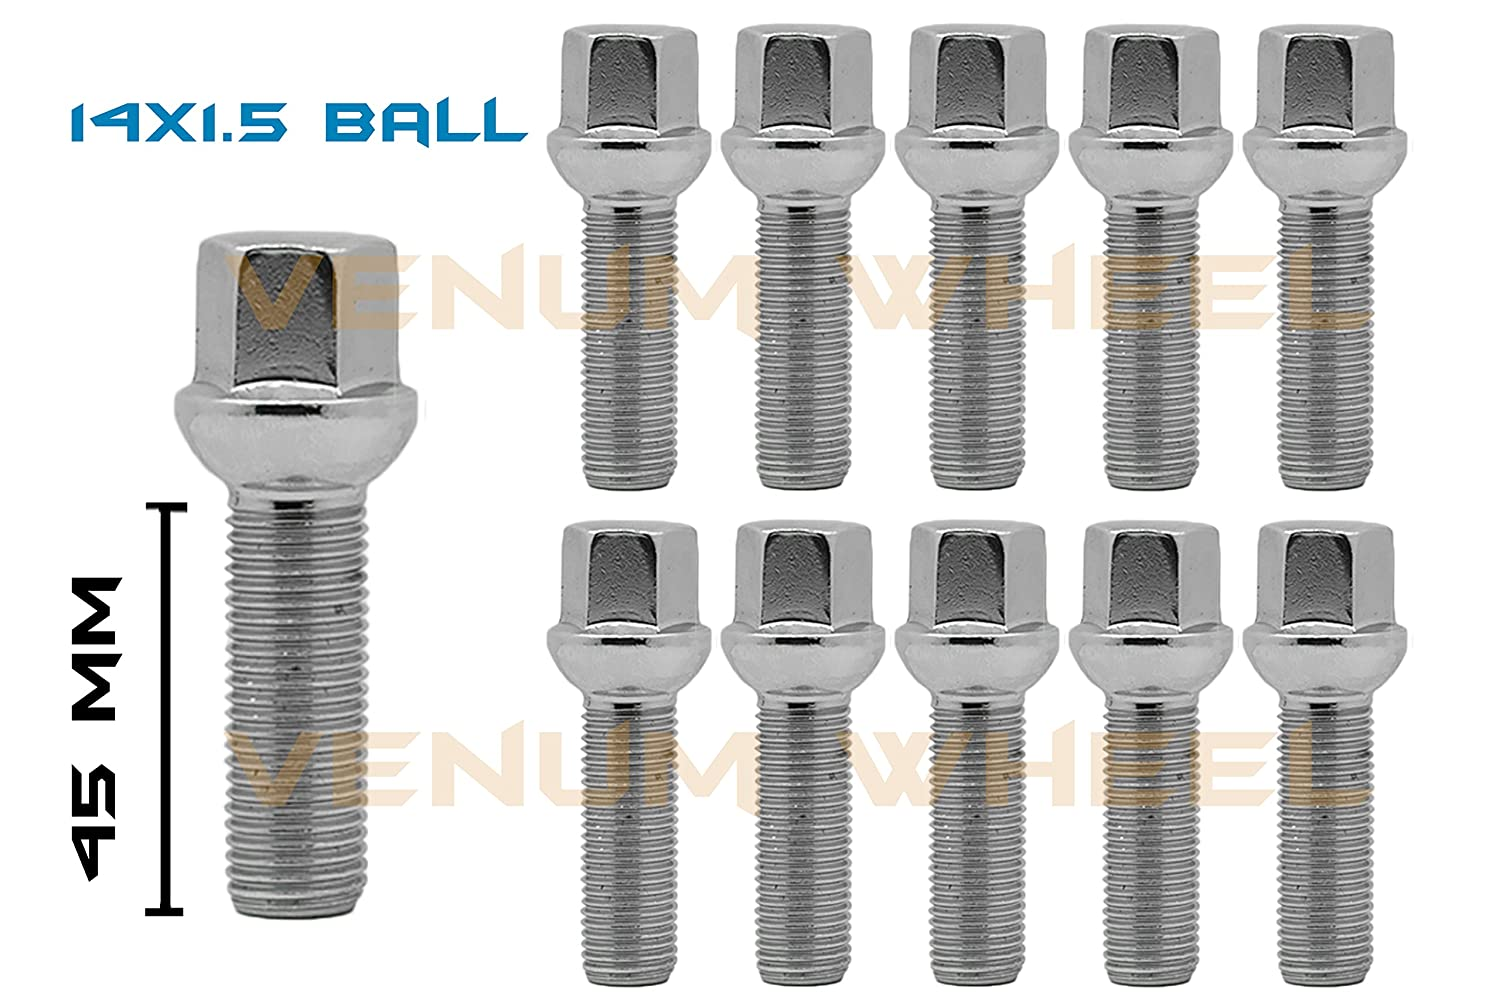 10 Pc 14x1.5 Ball Chrome Lug Bolts 45mm Shank Extended Length 17mm Hex Fits Mercedes Benz Audi Volkswagen Tiguan Touareg W216 W221 W164 VENUM WHEEL ACCESSORIES